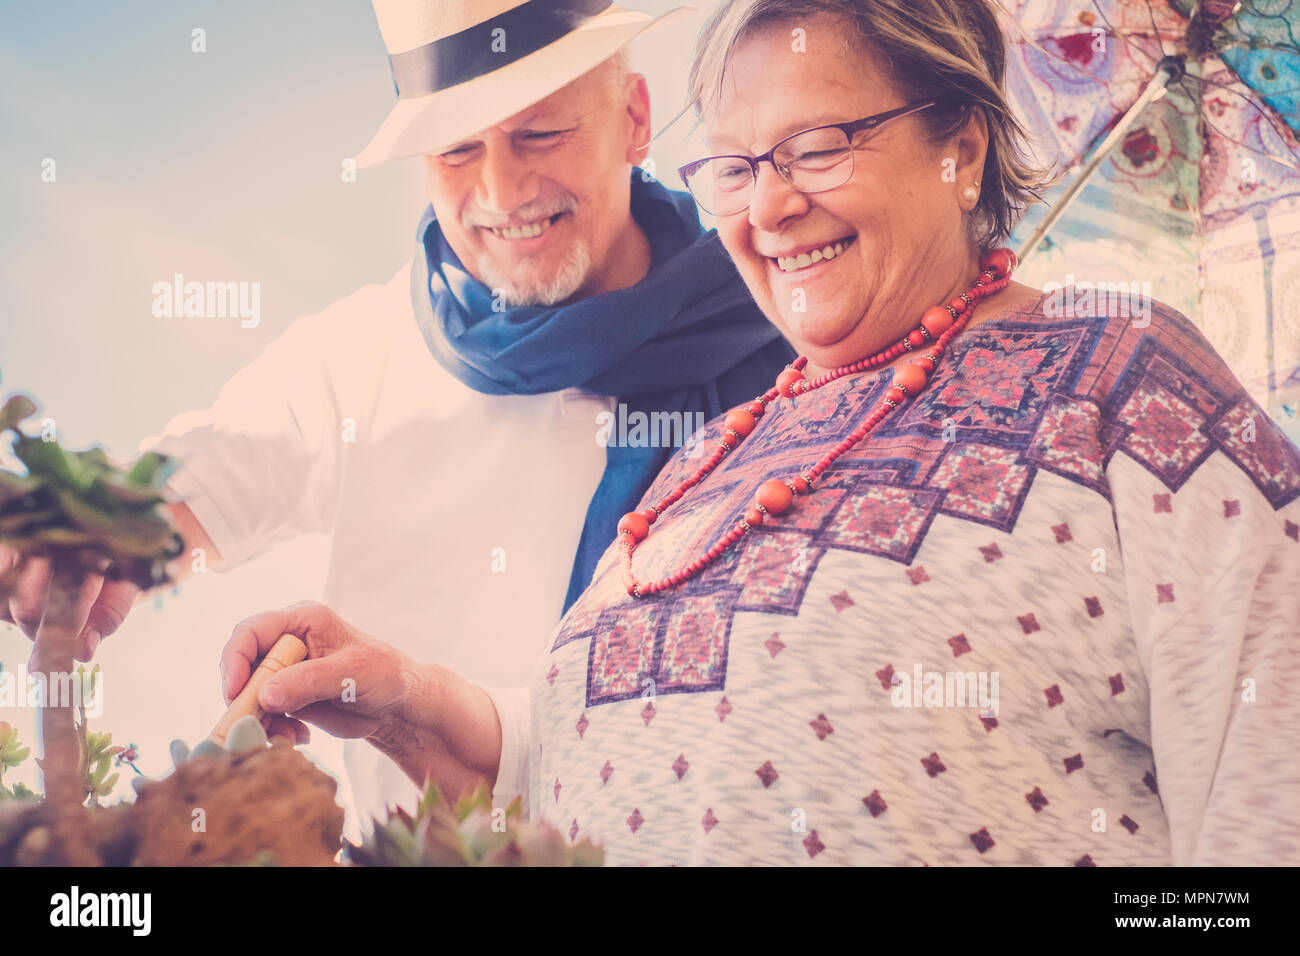 Senior man and woman elderly take care of the plants outdoor with ippy clothes and vintage filter for a retro look - Stock Image